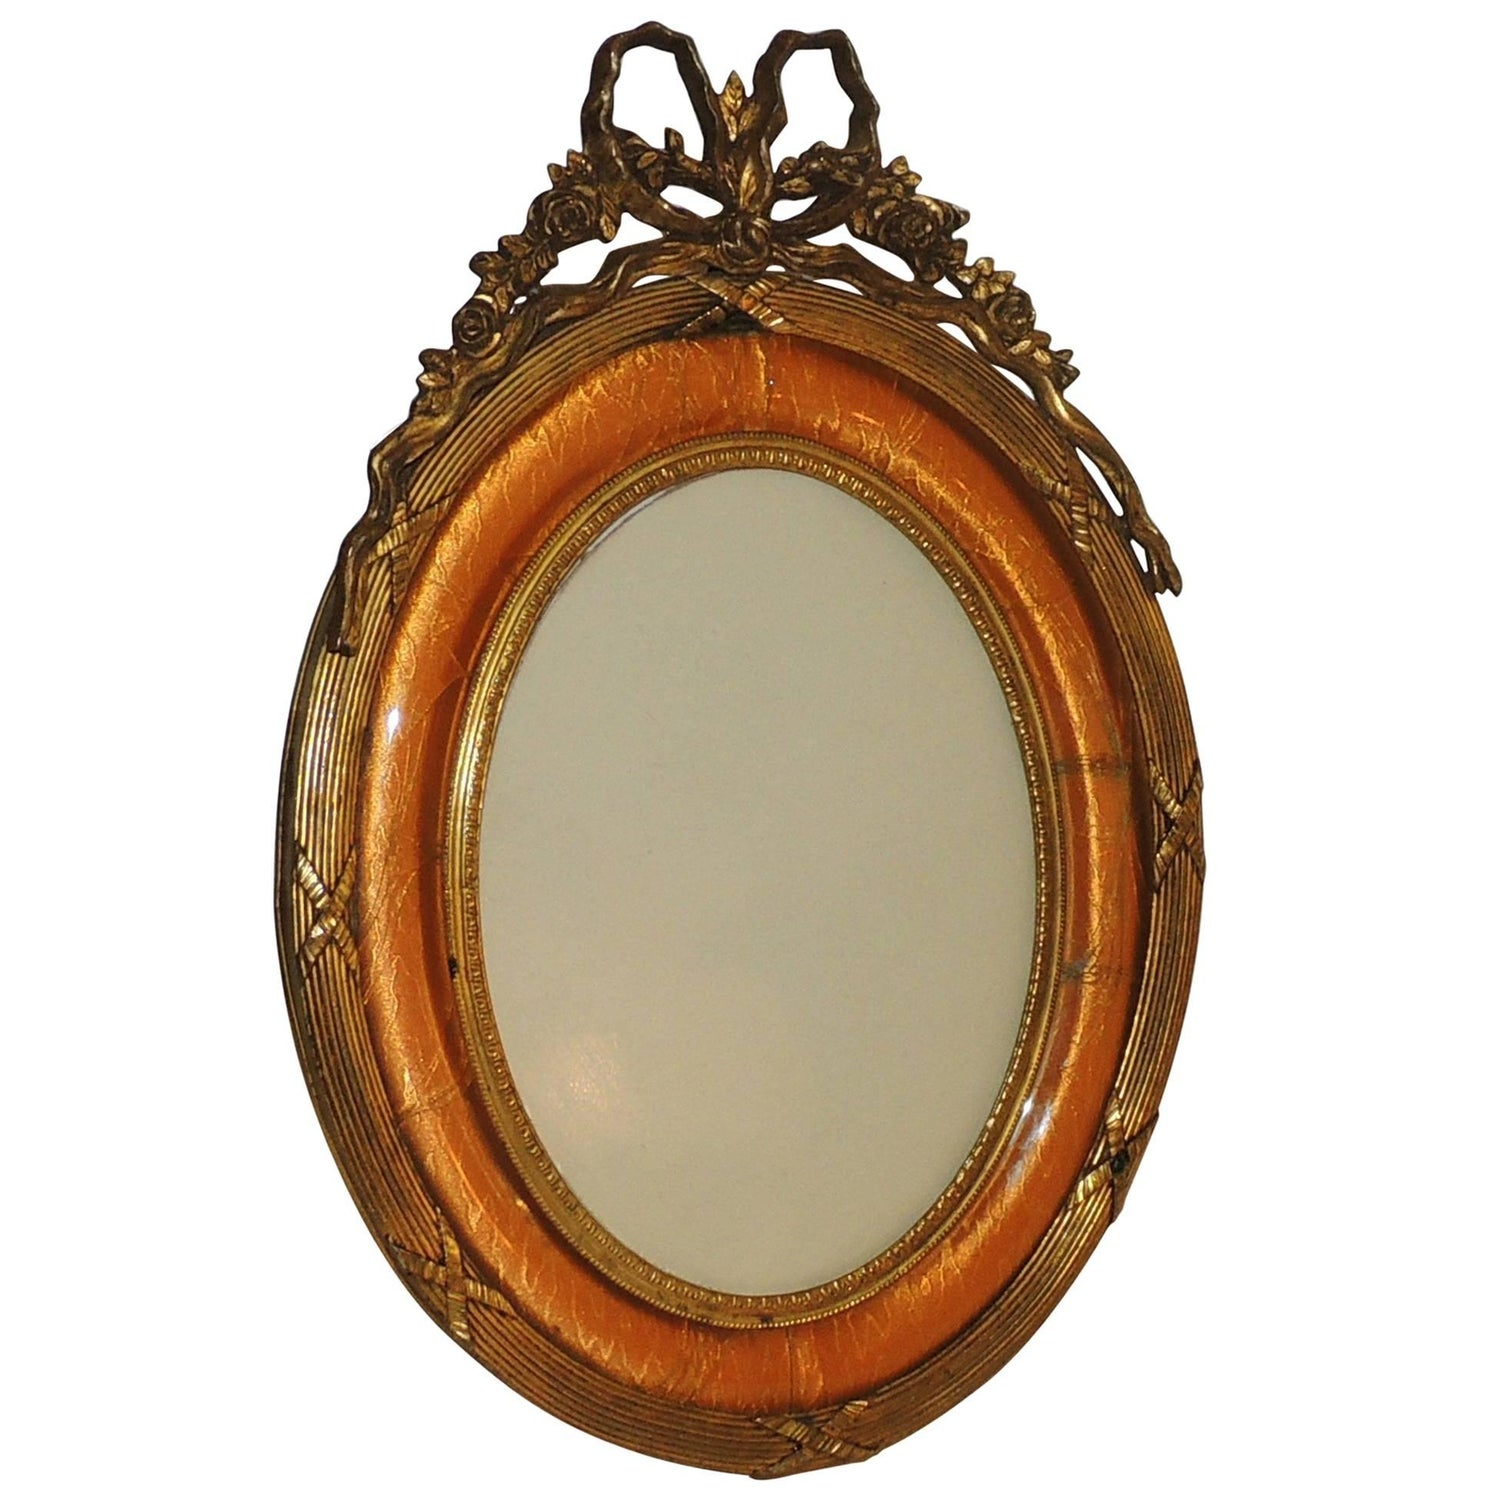 1940s picture frames 42 for sale at 1stdibs wonderful vintage french bow top dor bronze oval peach enamel picture frame jeuxipadfo Choice Image